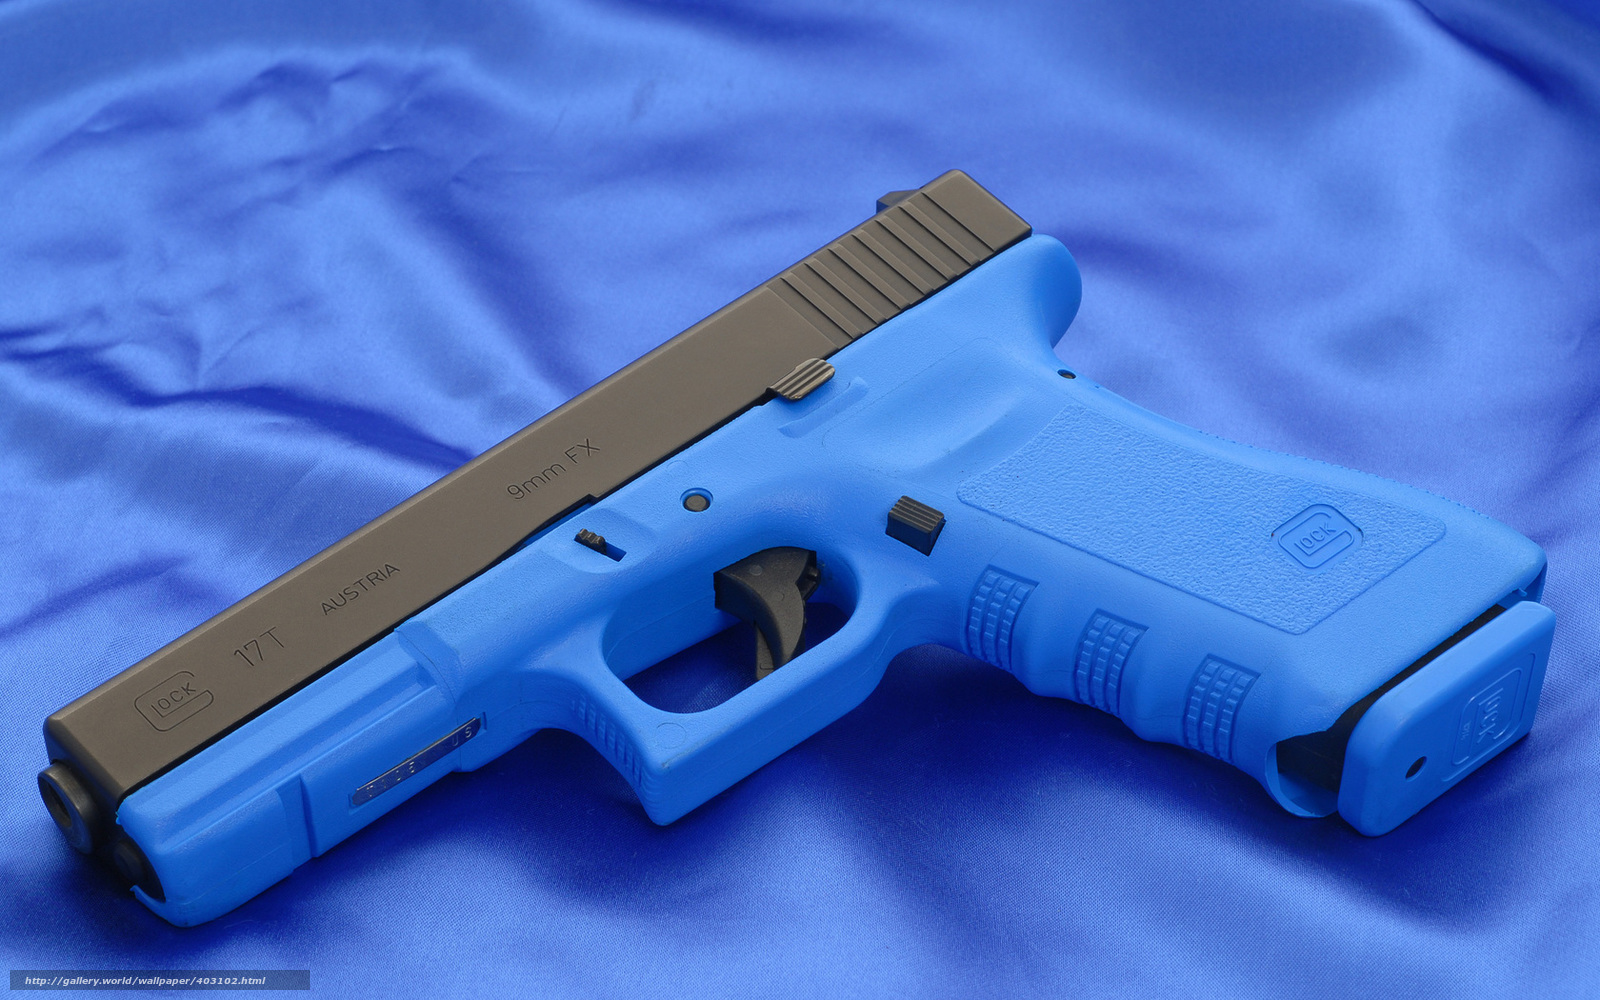 Free download Download wallpaper Glock gun blue wallpaper